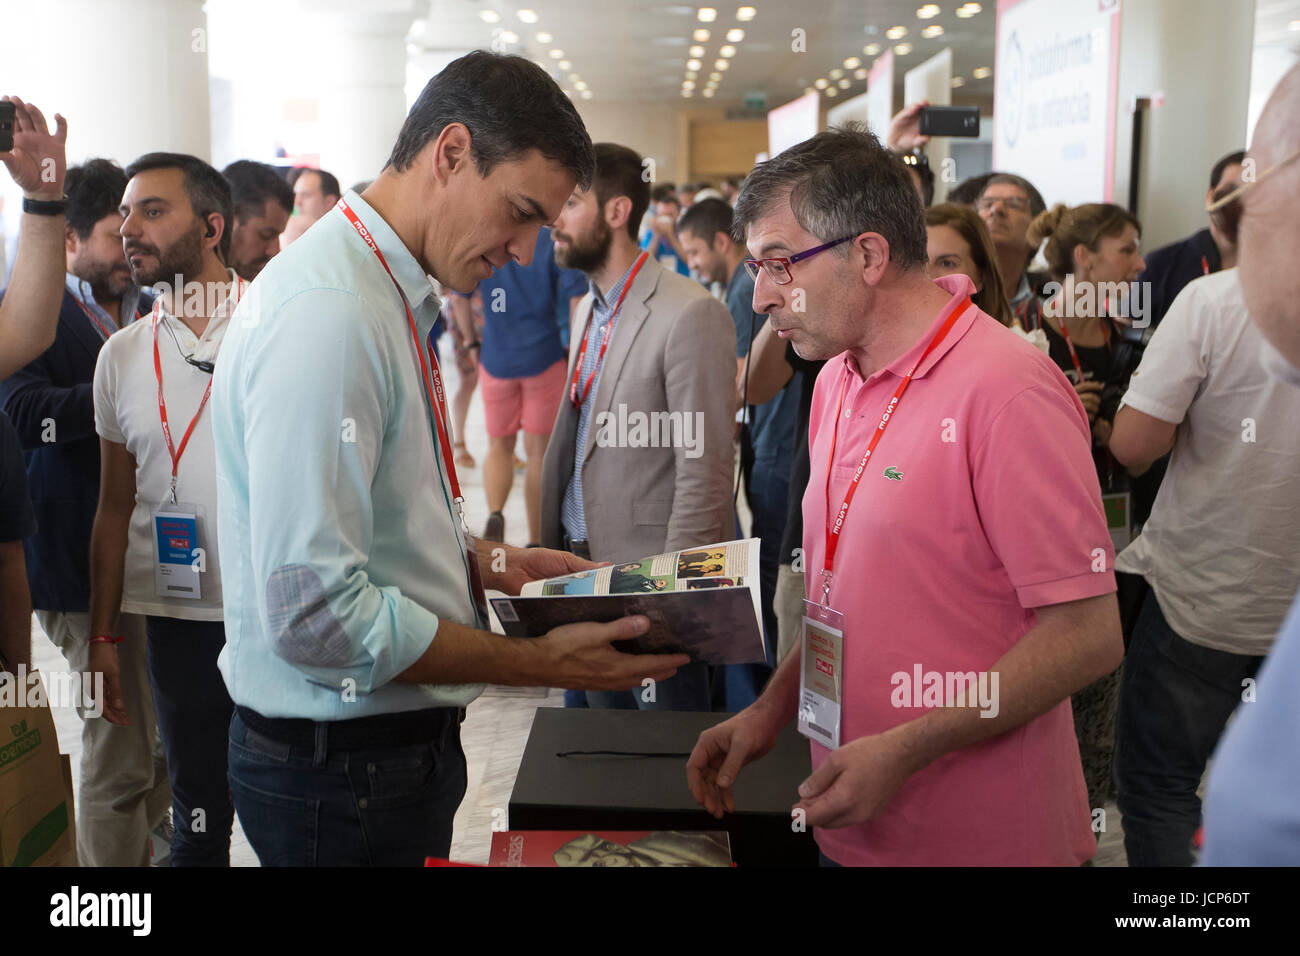 Madrid, Spain. 17th June, 2017. Pedro Sanchez during the inauguration of the 39th PSOE congress, in Madrid, on Saturday Stock Photo